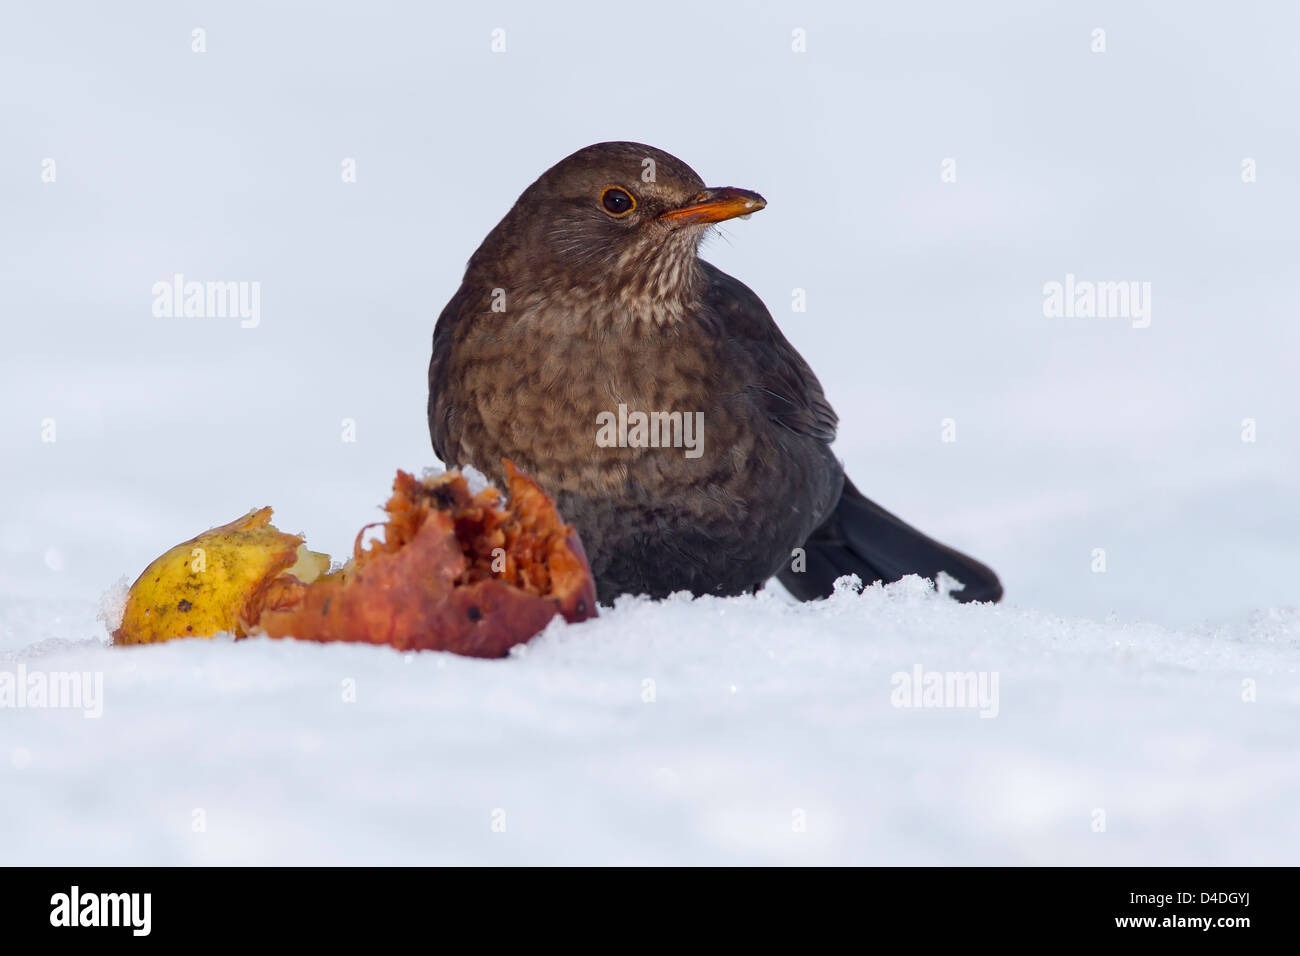 FEMALE BLACKBIRD IN SNOW WITH A ROTTEN APPLE - Stock Image